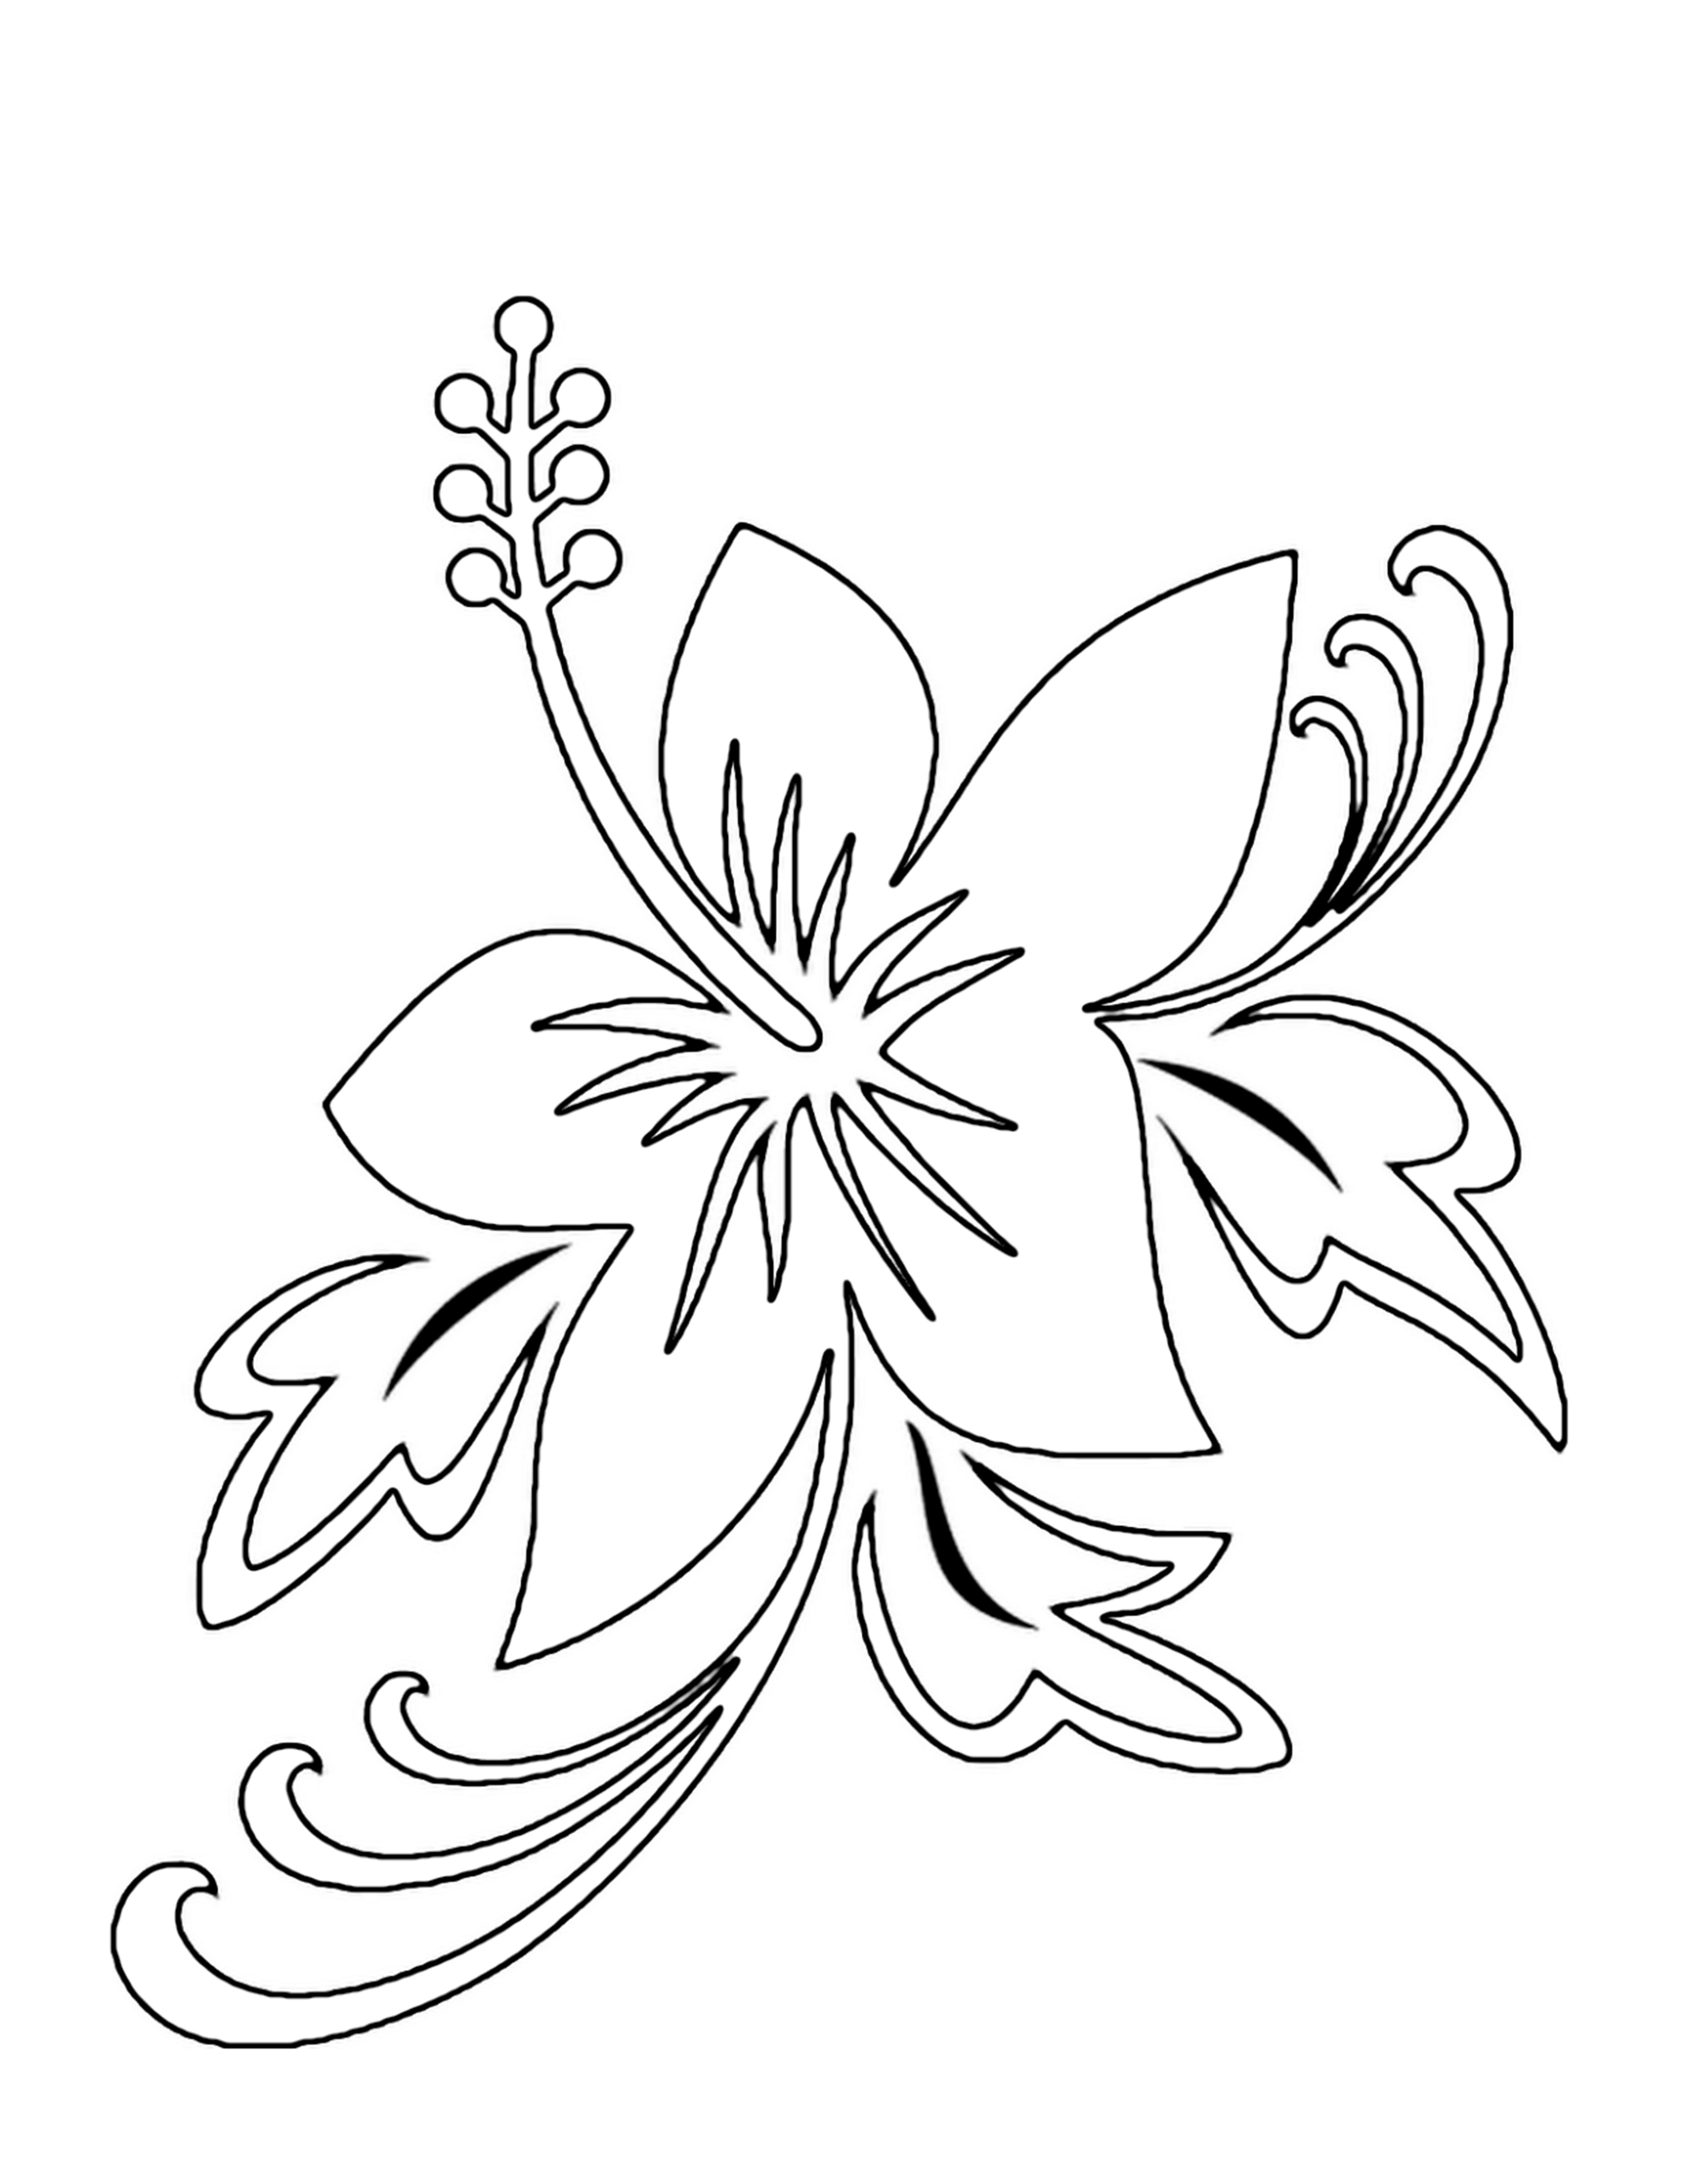 a flower coloring page top 47 free printable flowers coloring pages online coloring page flower a